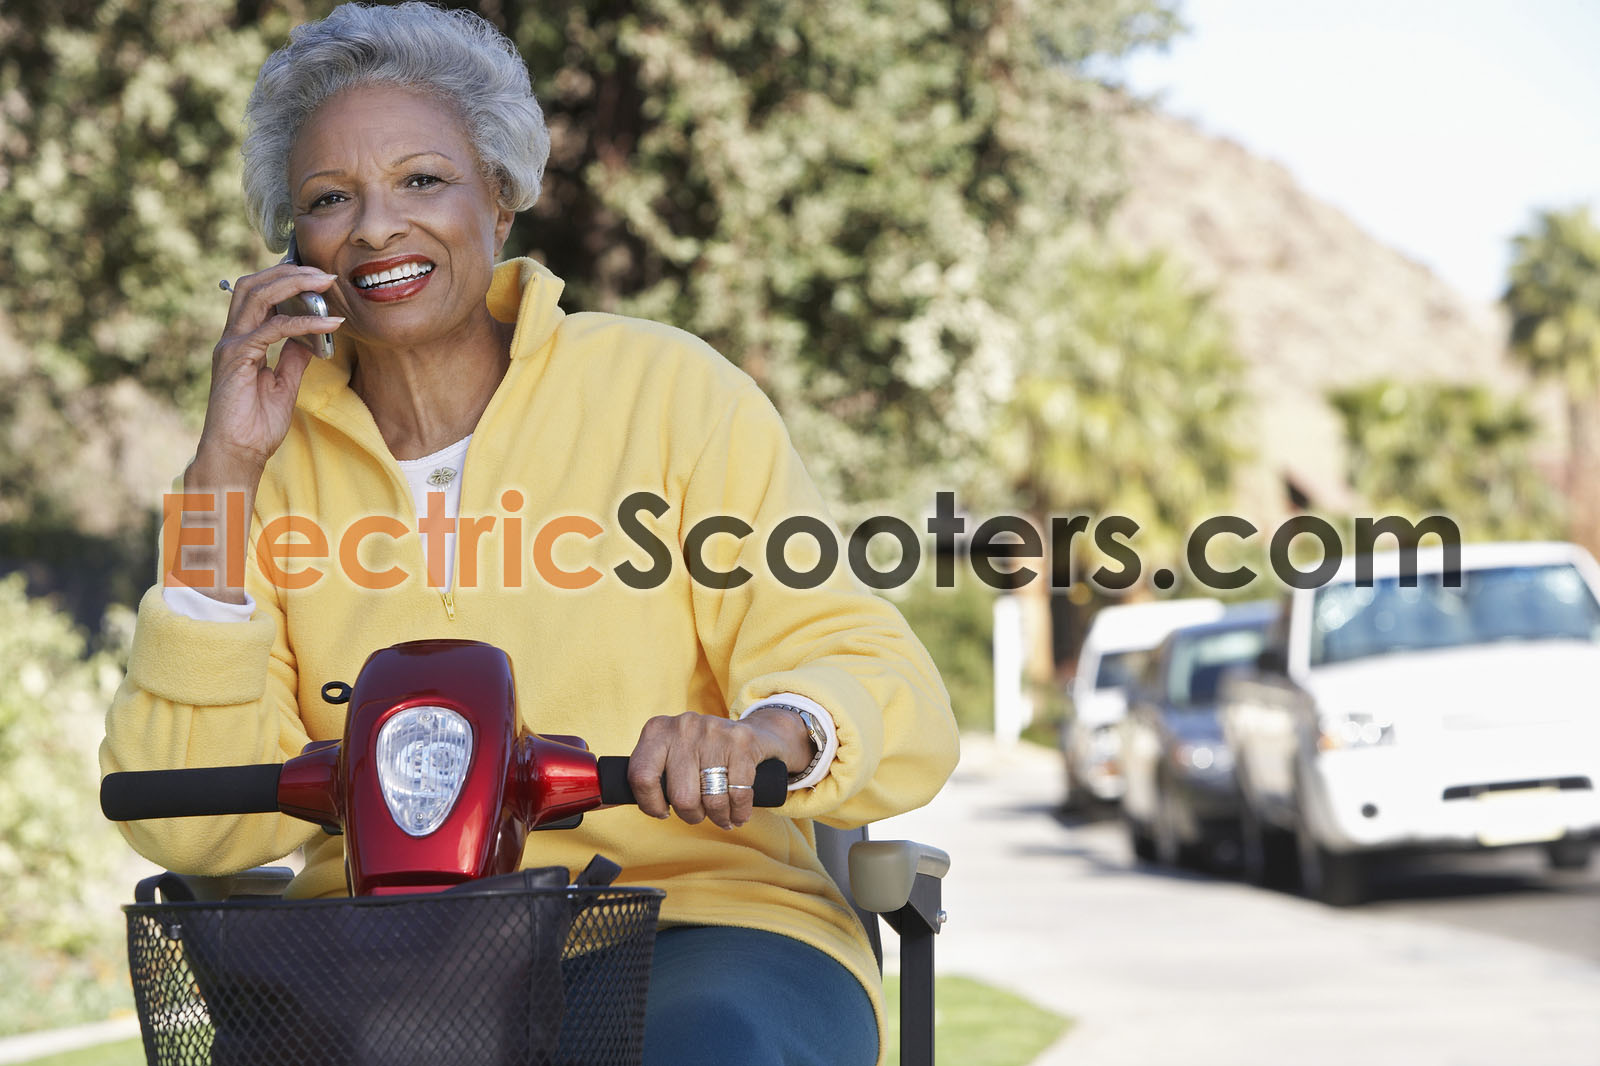 electric scooter for adult, electric scooter, escooter